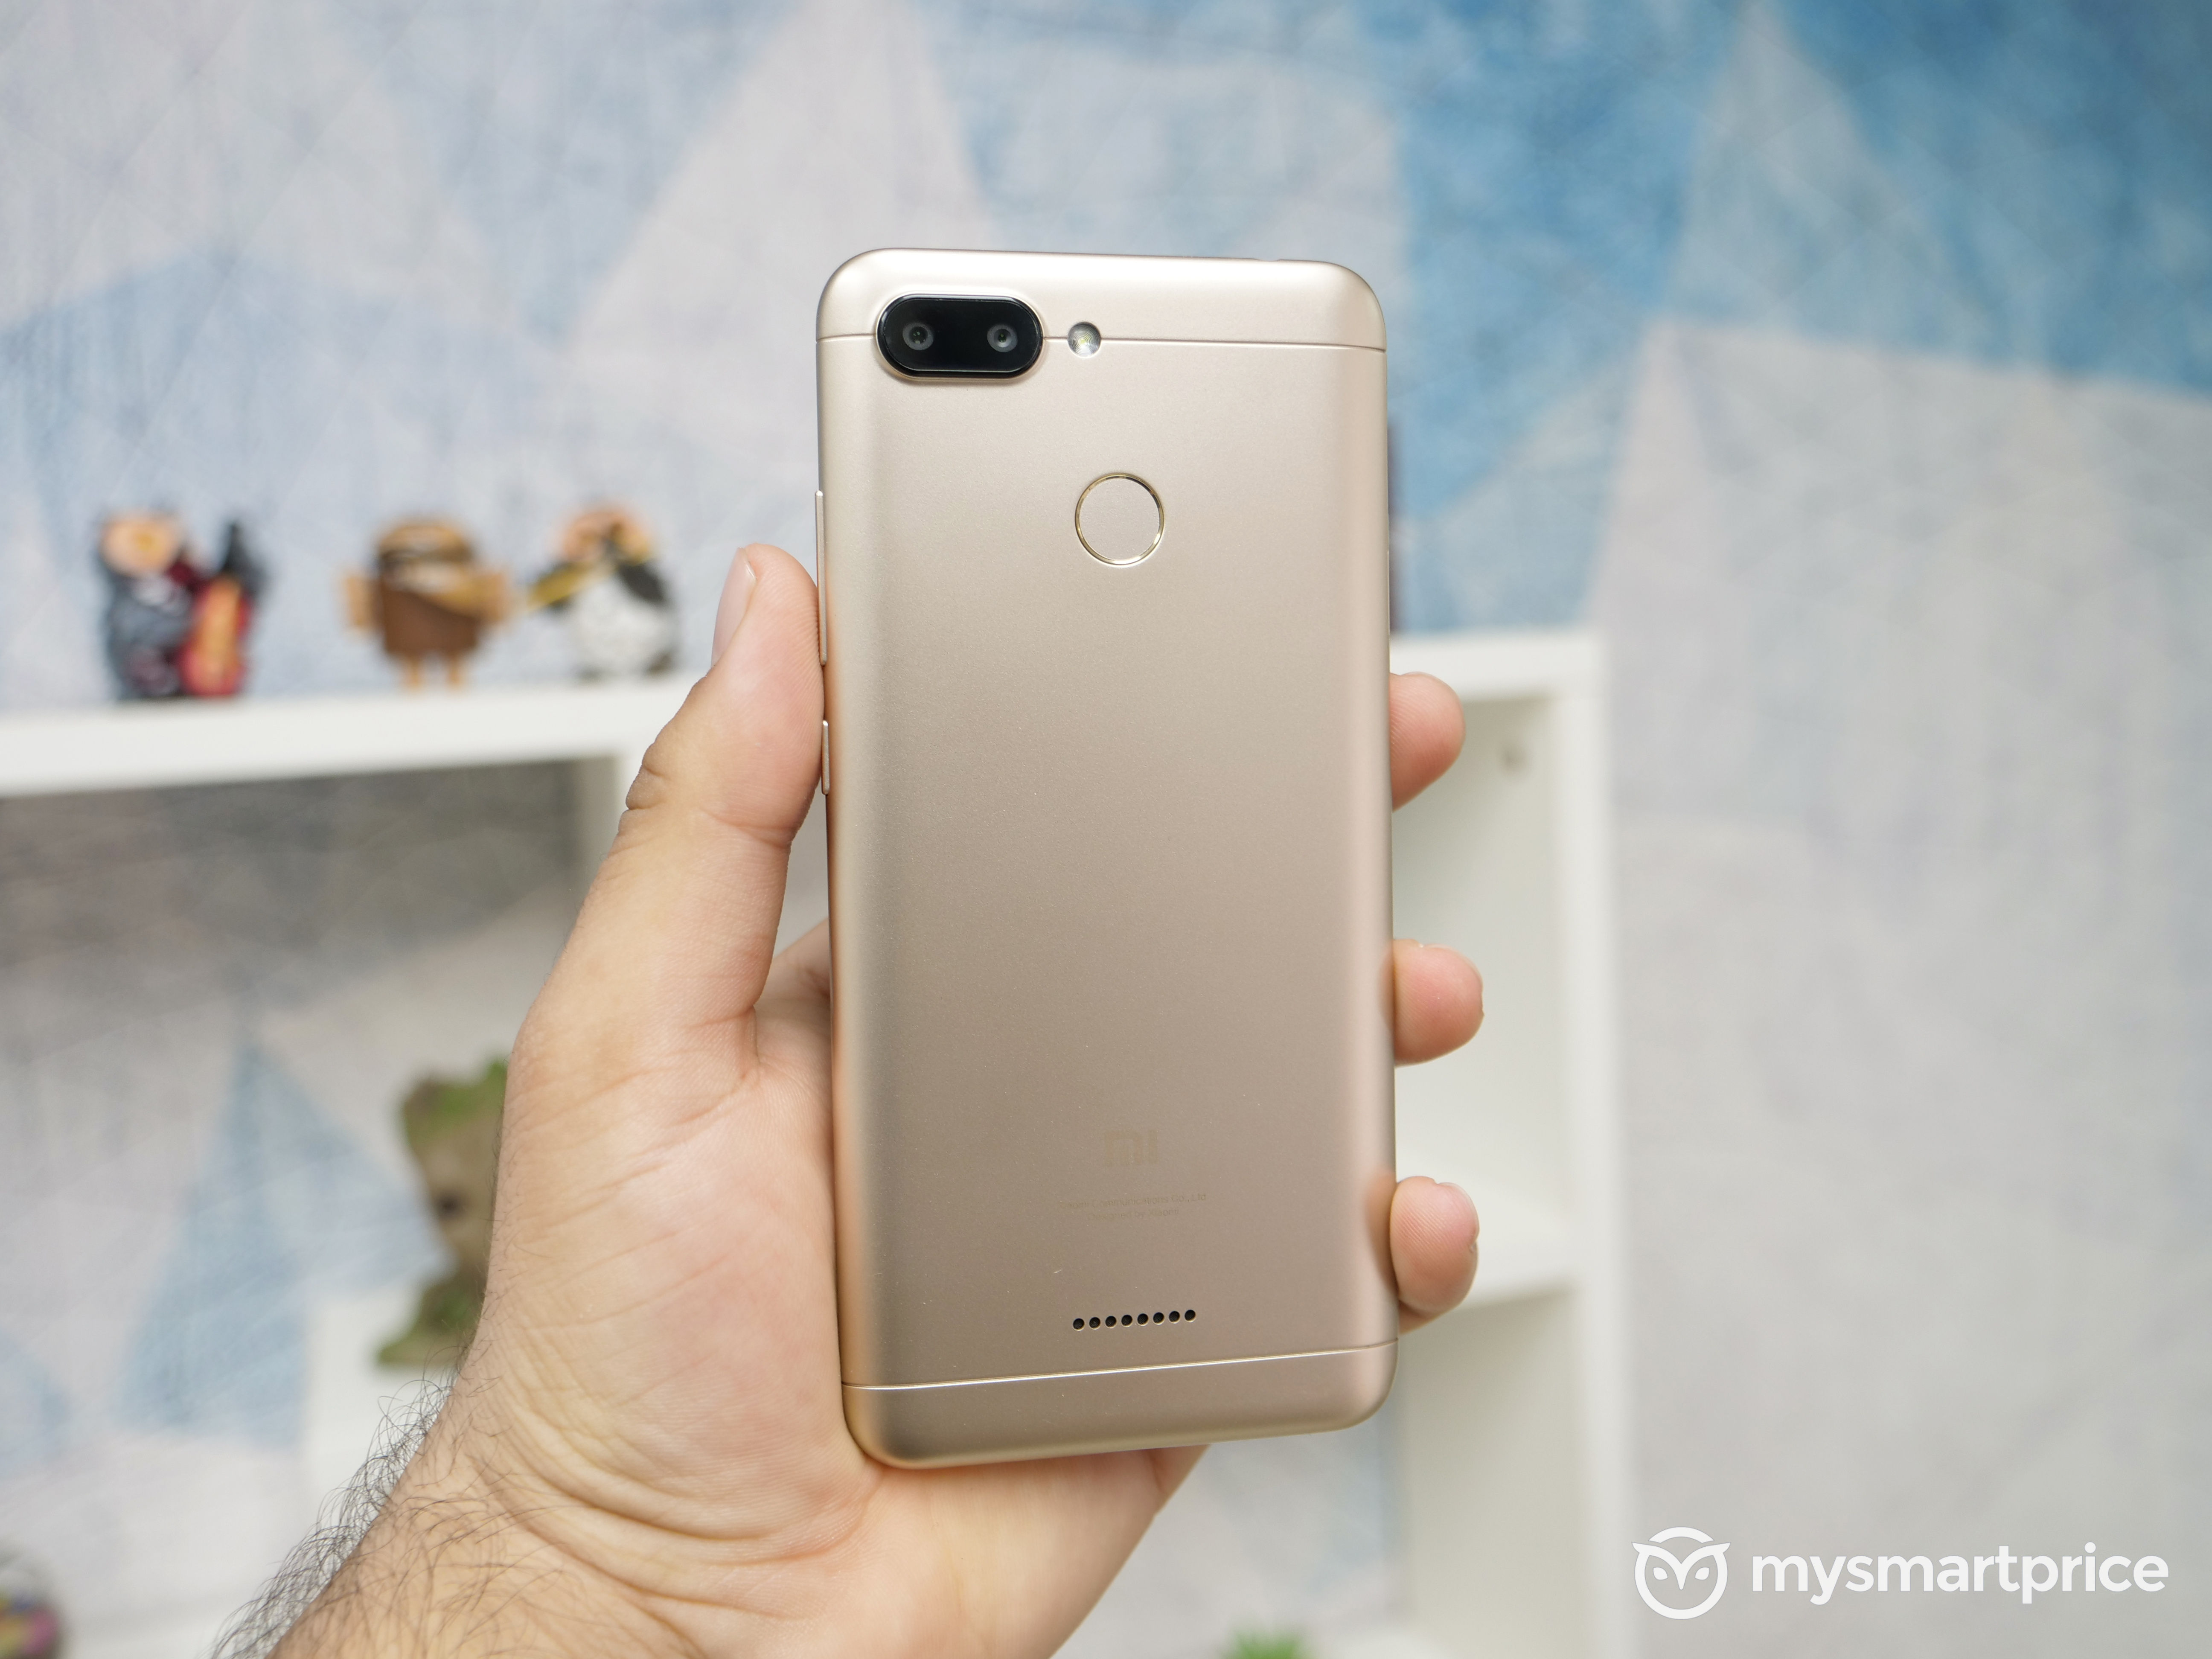 Xiaomi Redmi 6 Review: A Step Down From The Redmi 5 - MySmartPrice